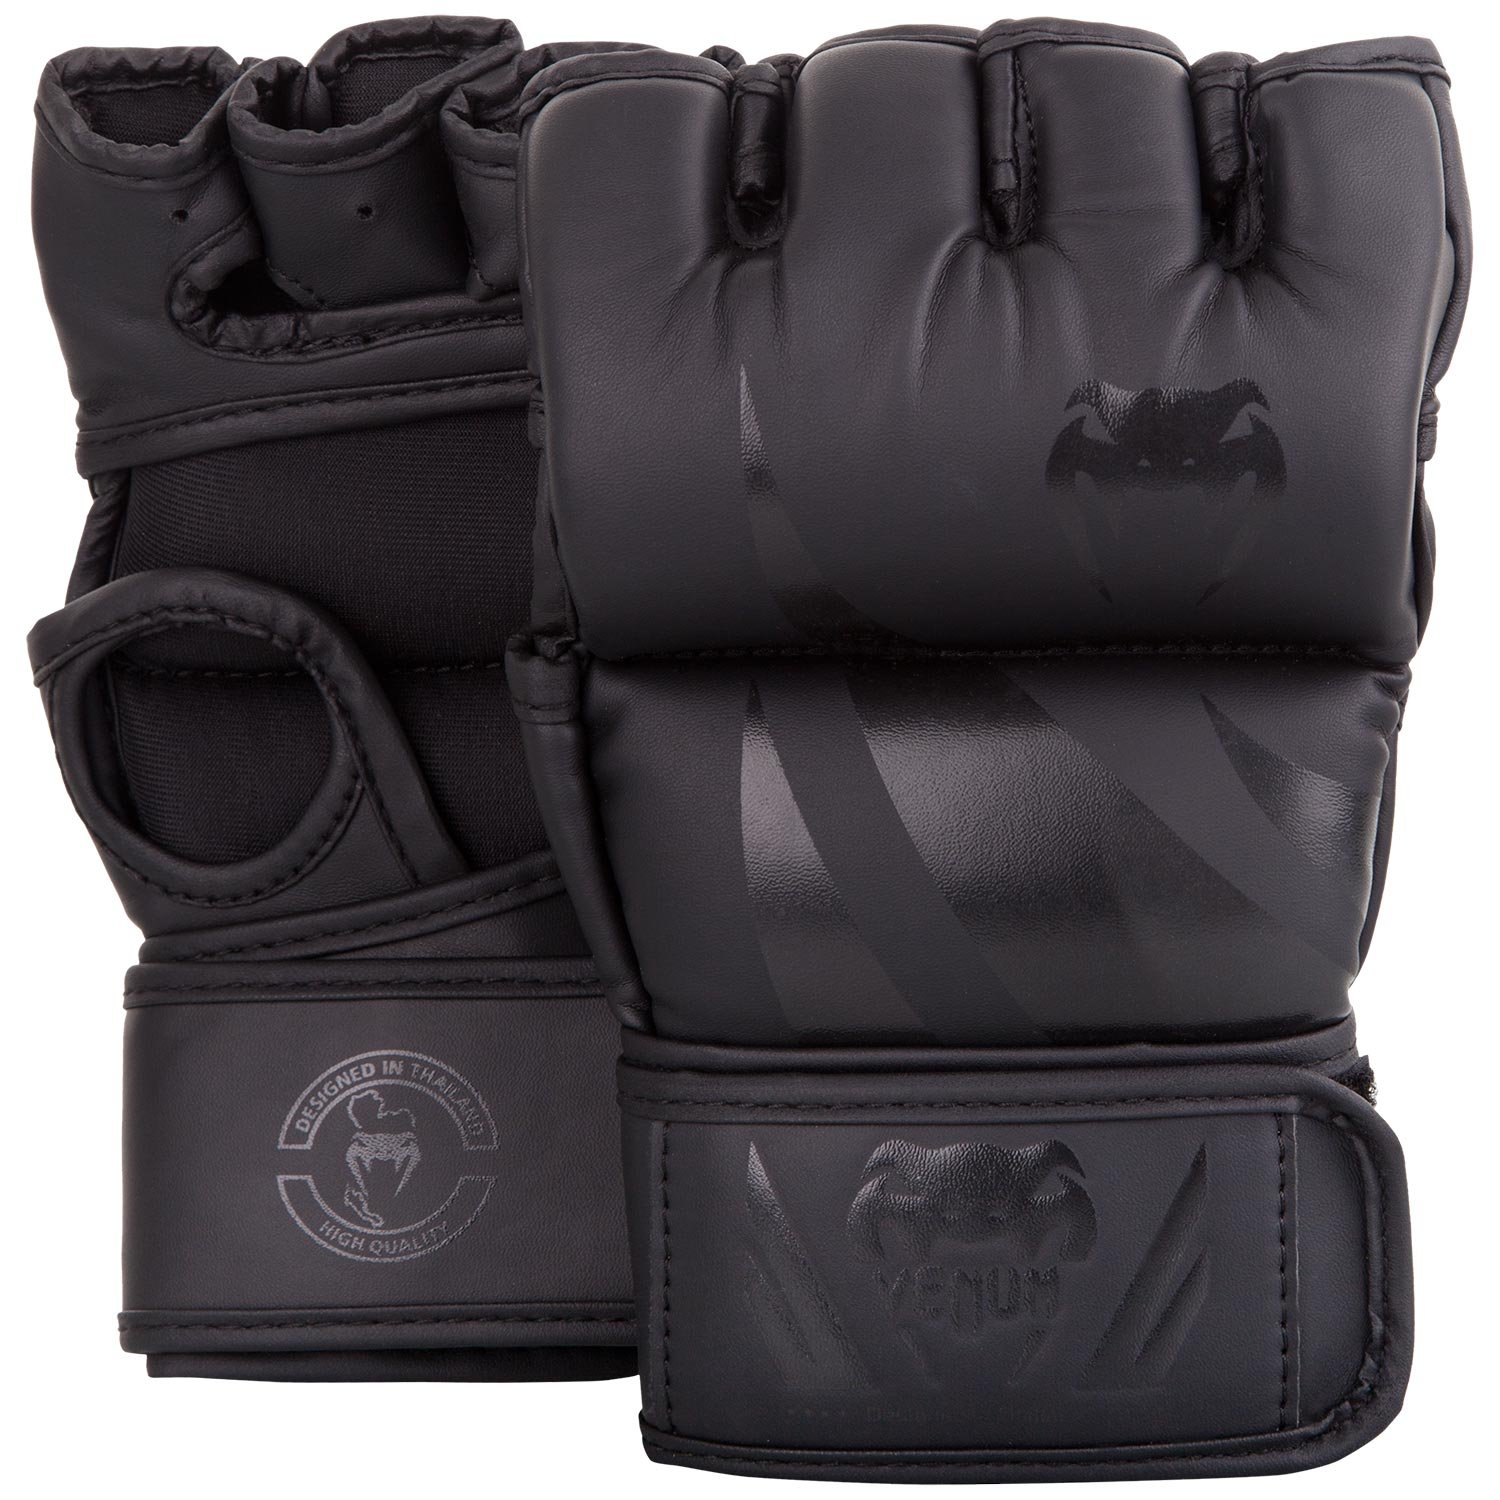 Venum Challenger MMA Gloves - Without Thumb - L/XL, Black/Black, Large/X-Large by Venum